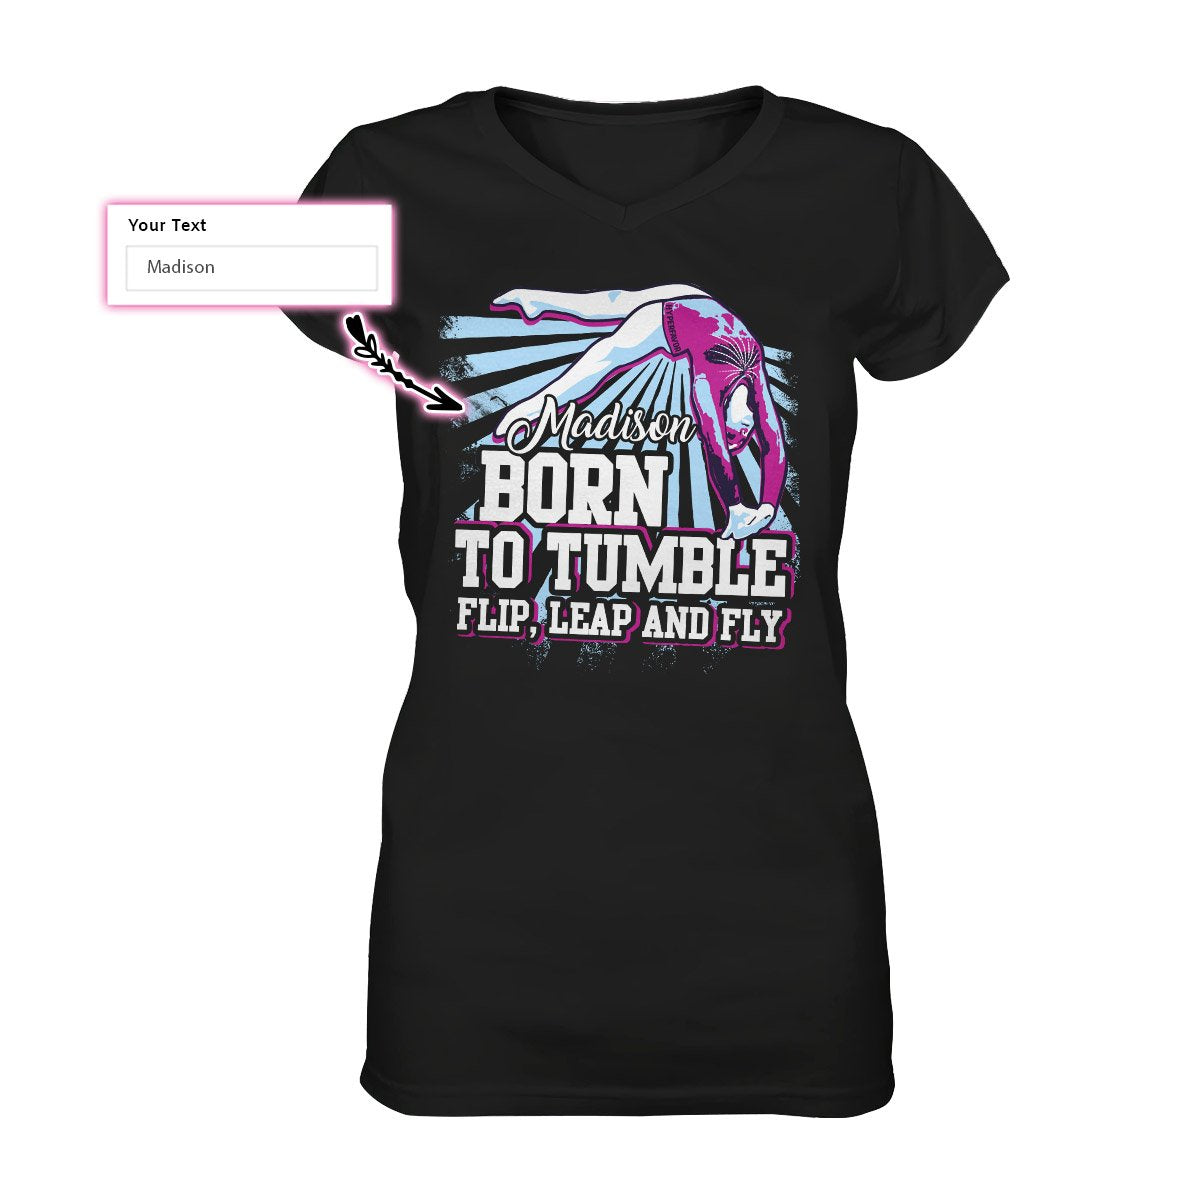 Personalized Gymnastics Born To Tumble, Flip, Leap & Fly EZ09 0709 Custom Women V-neck T-shirt